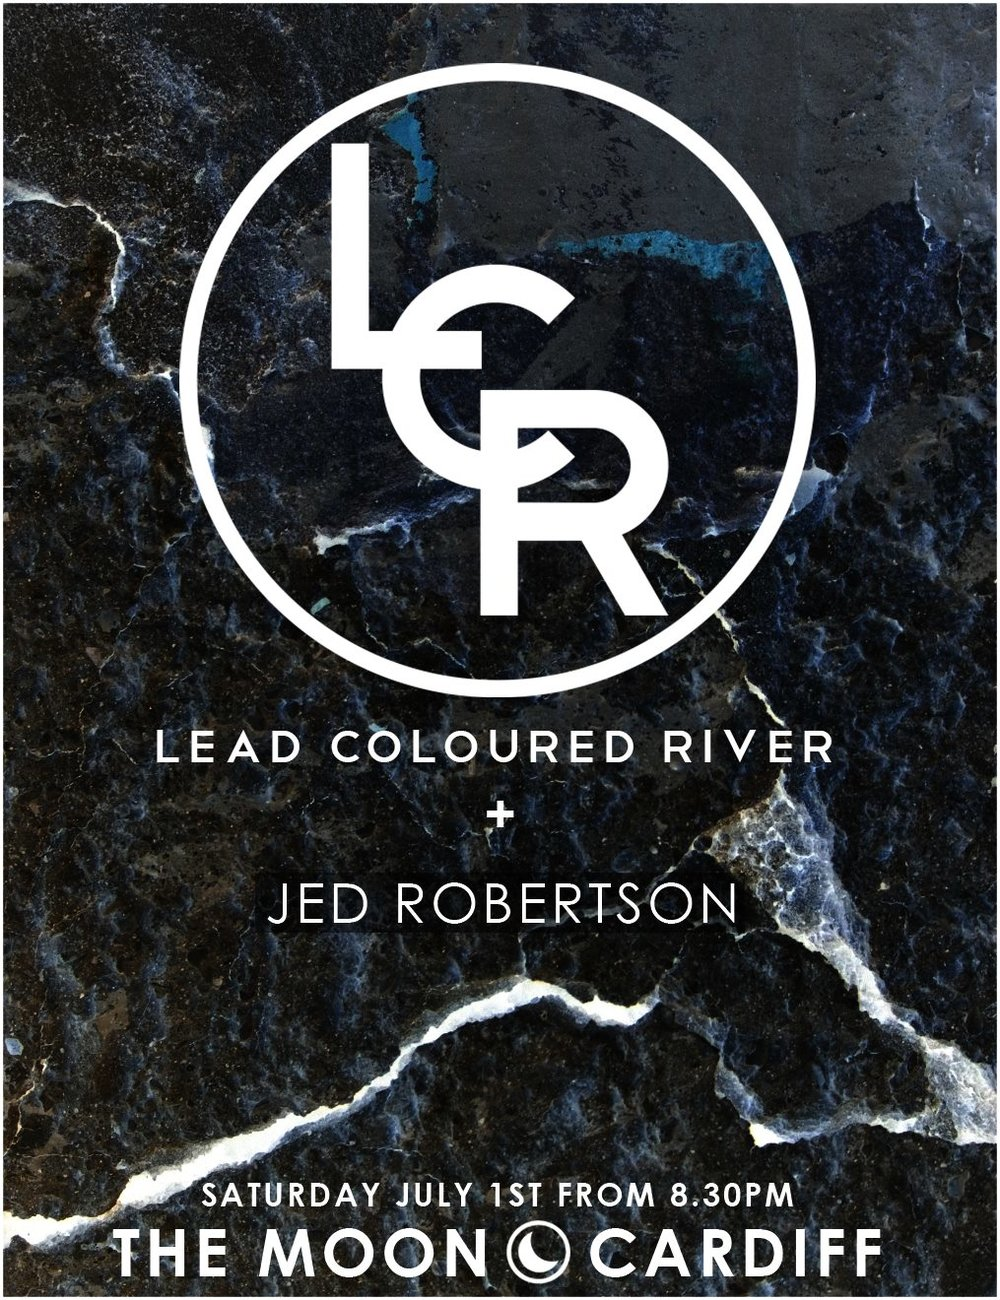 Lead Coloured River